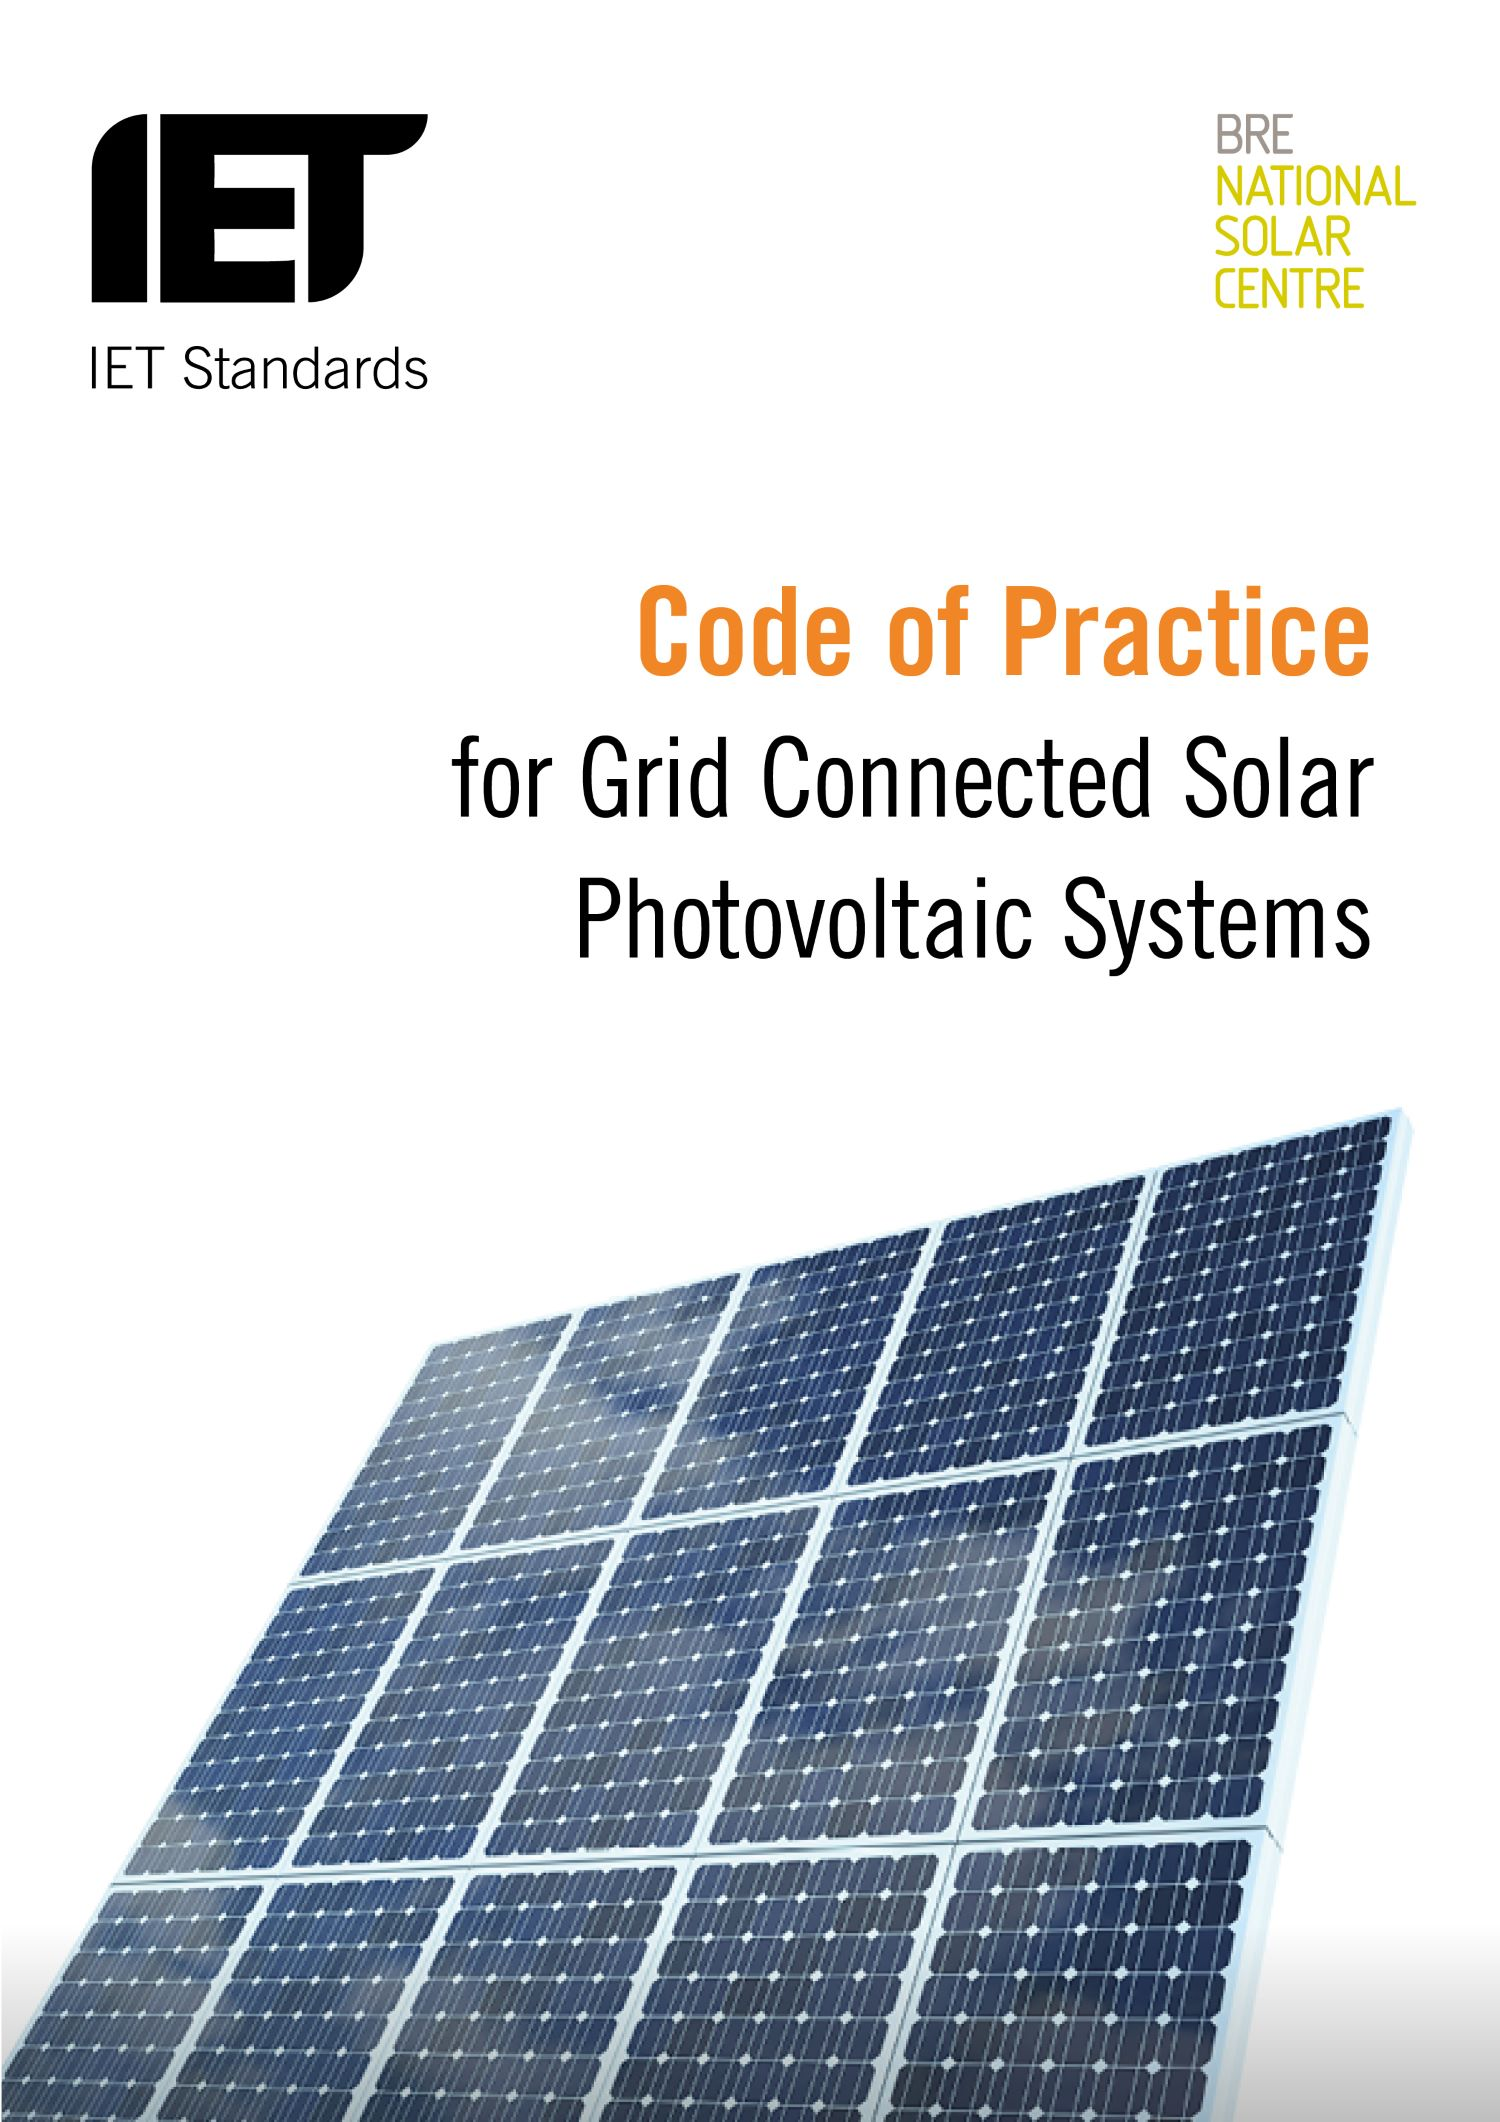 The Iet Shop Code Of Practice For Grid Connected Solar Photovoltaic Systems